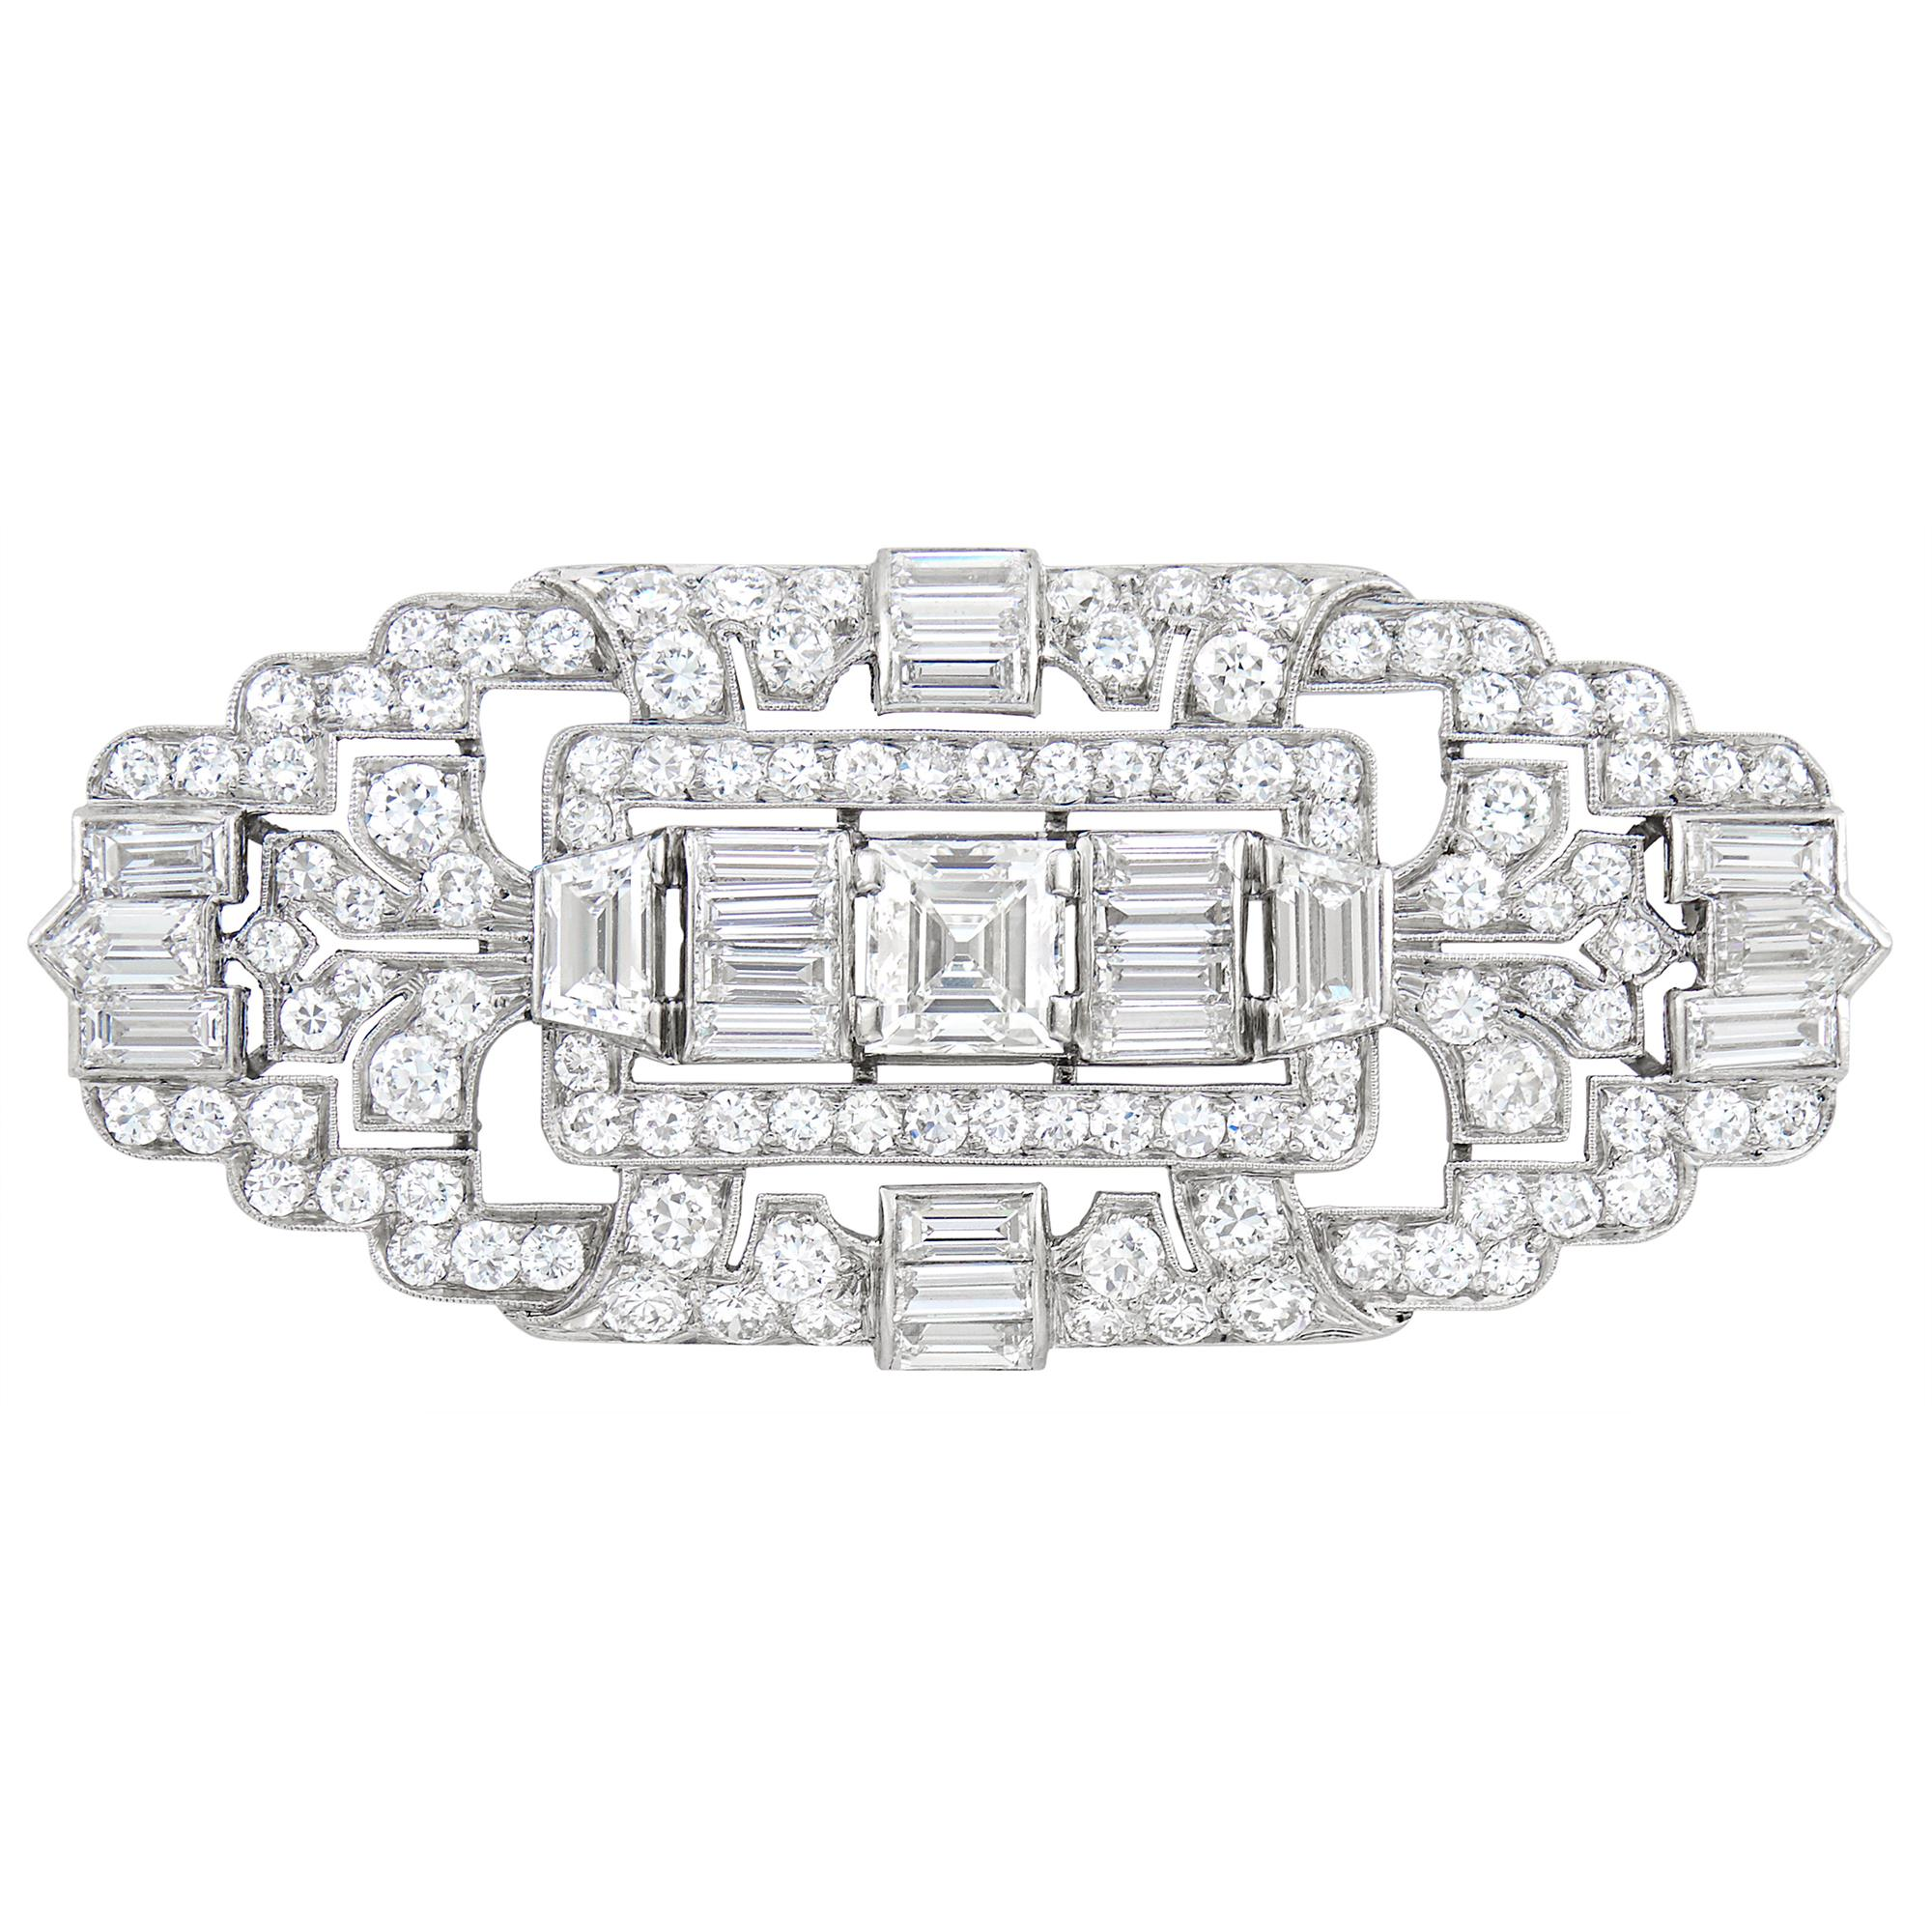 Lot image - Platinum and Diamond Brooch, Tiffany & Co.